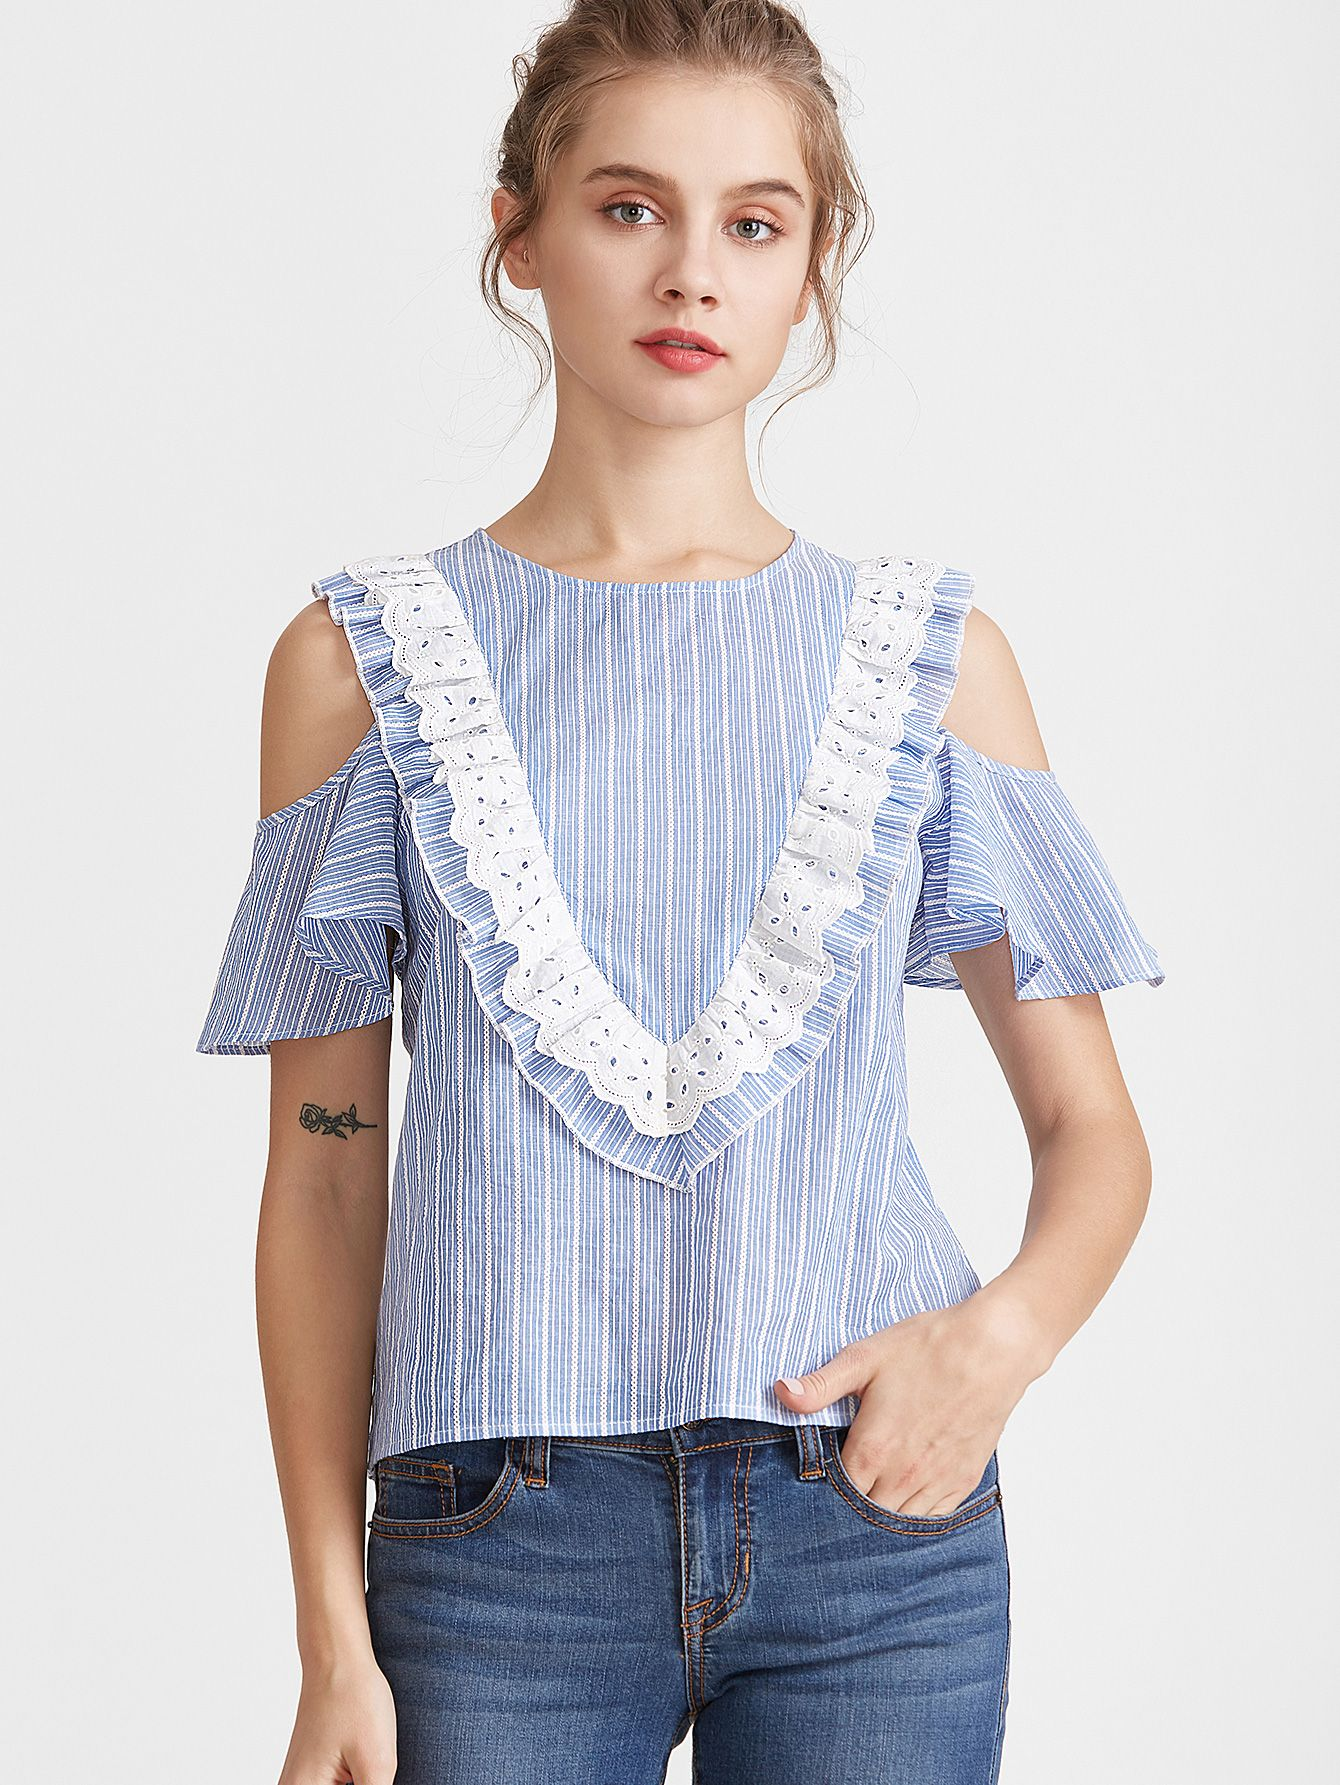 79f74e90713c6 Shop Blue Striped Eyelet Embroidered Ruffle Trim Cold Shoulder Top online.  SheIn offers Blue Striped Eyelet Embroidered Ruffle Trim Cold Shoulder Top    more ...